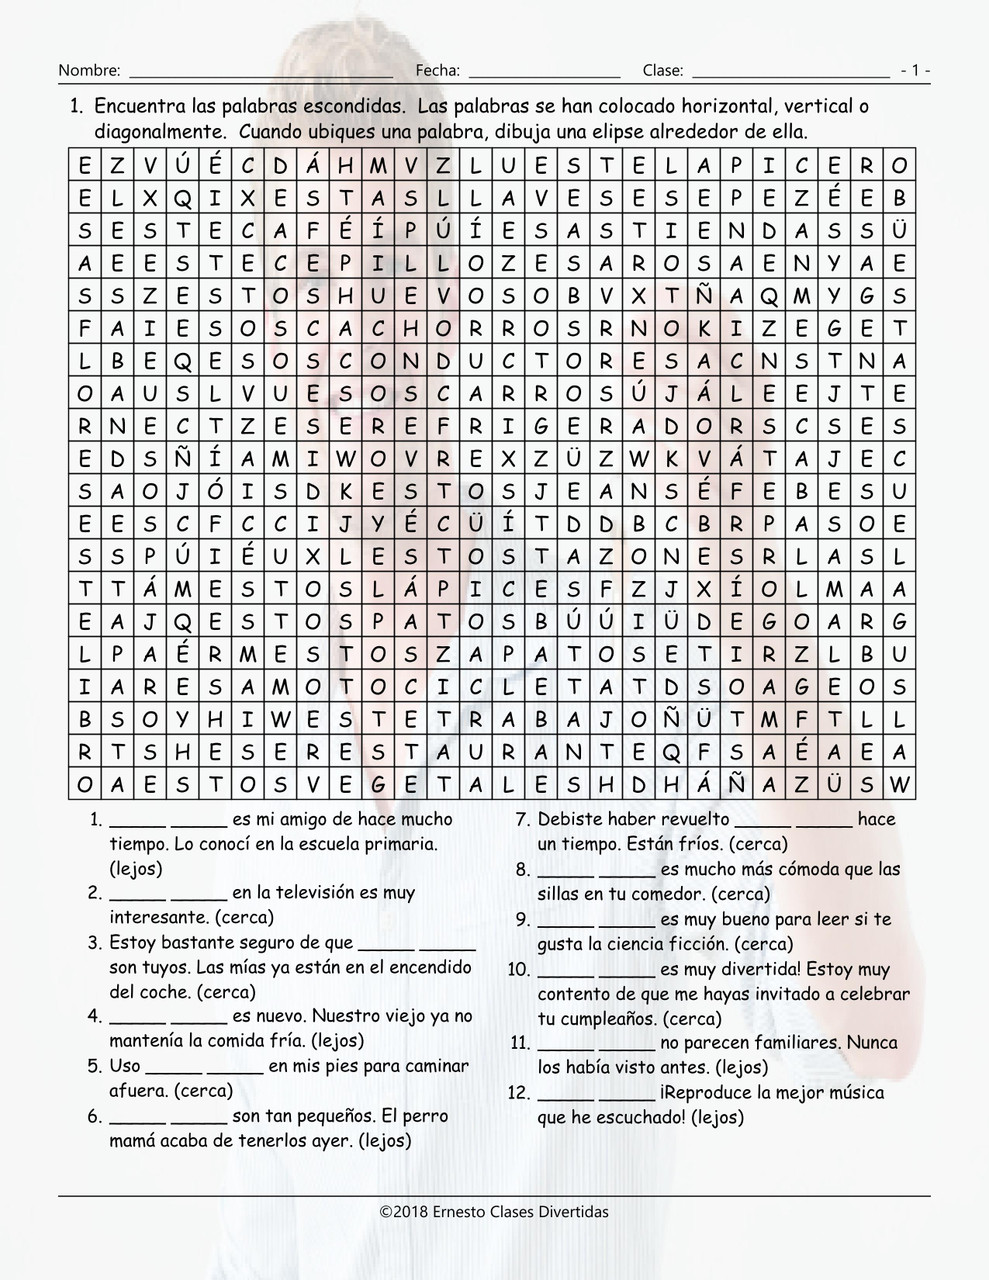 Demonstrative Adjectives Spanish Word Search Worksheet - Amped Up Learning [ 1280 x 989 Pixel ]